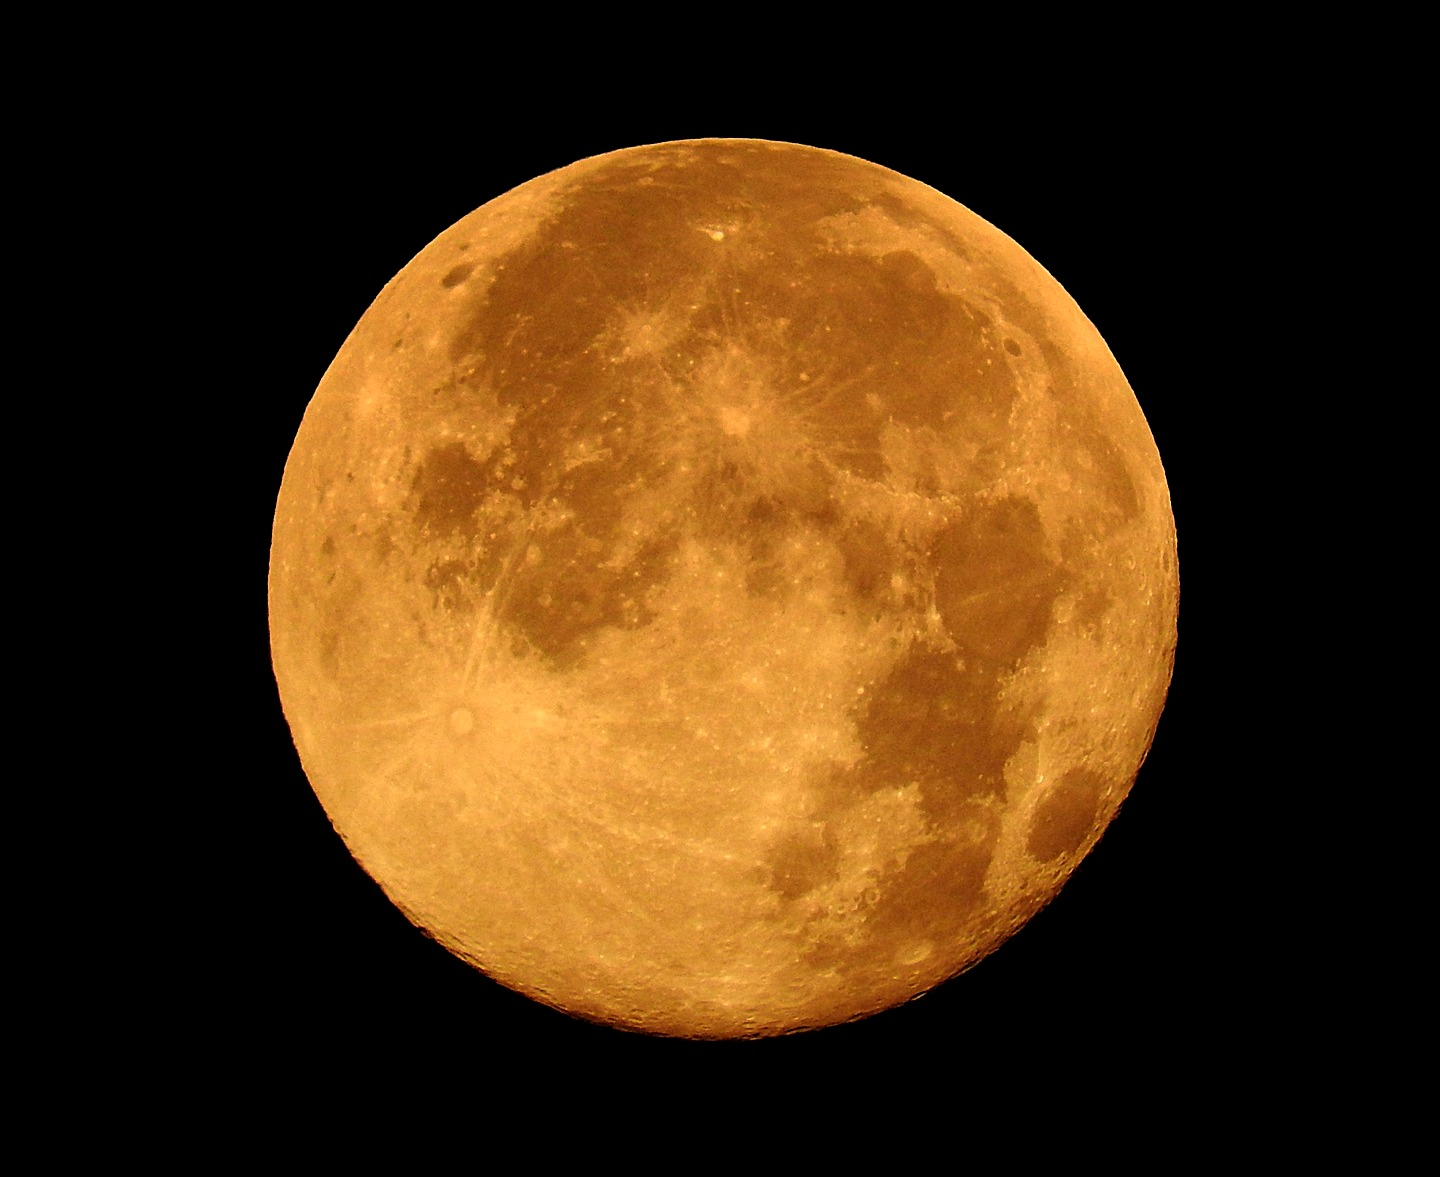 Full Moon for October 2016 | The Old Farmers Almanac